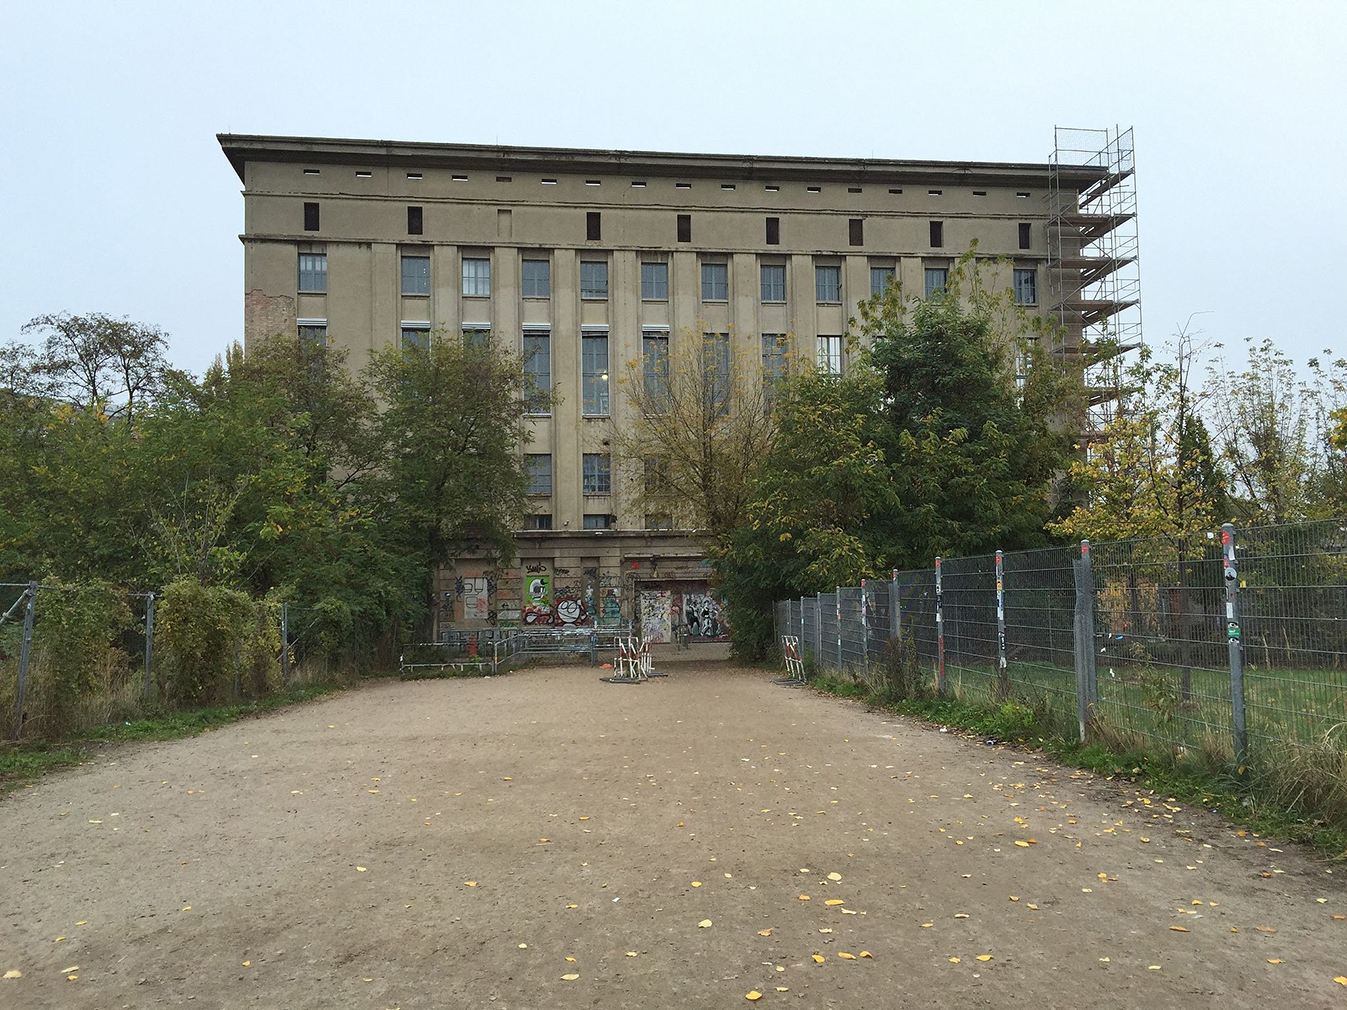 Cult clubs: Berghain in Berlin